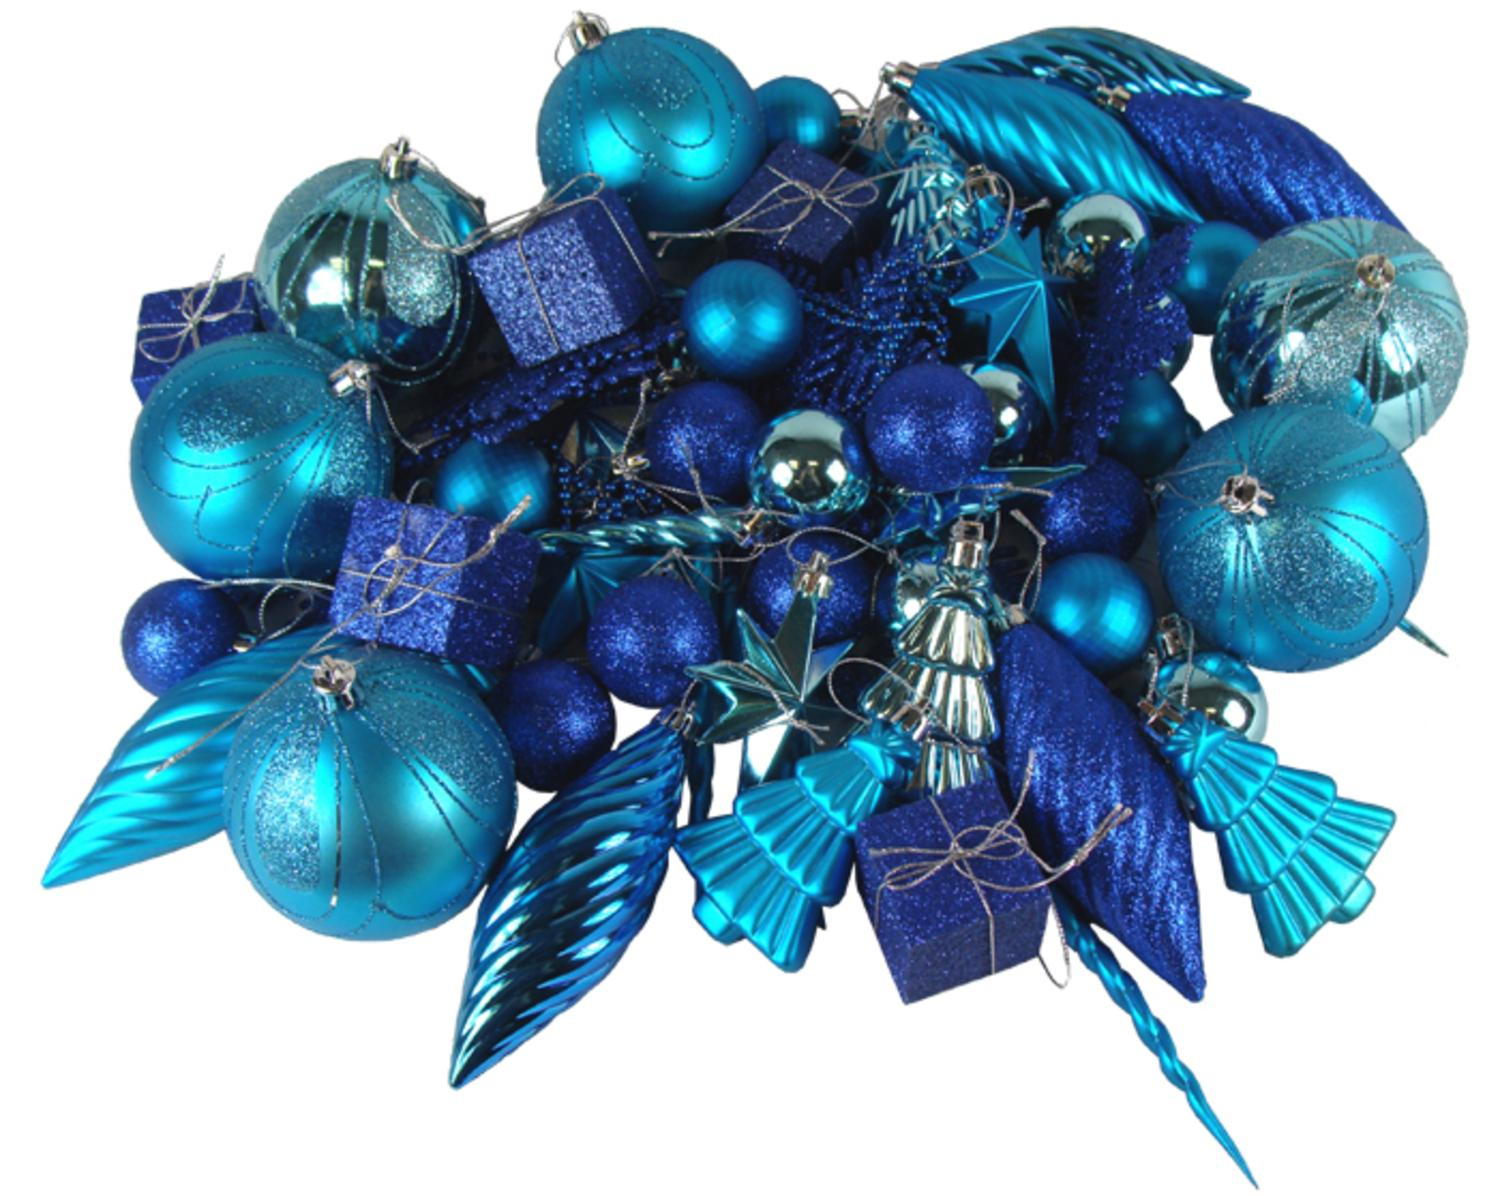 125 piece club pack of shatterproof regal peacock blue christmas ornaments walmartcom